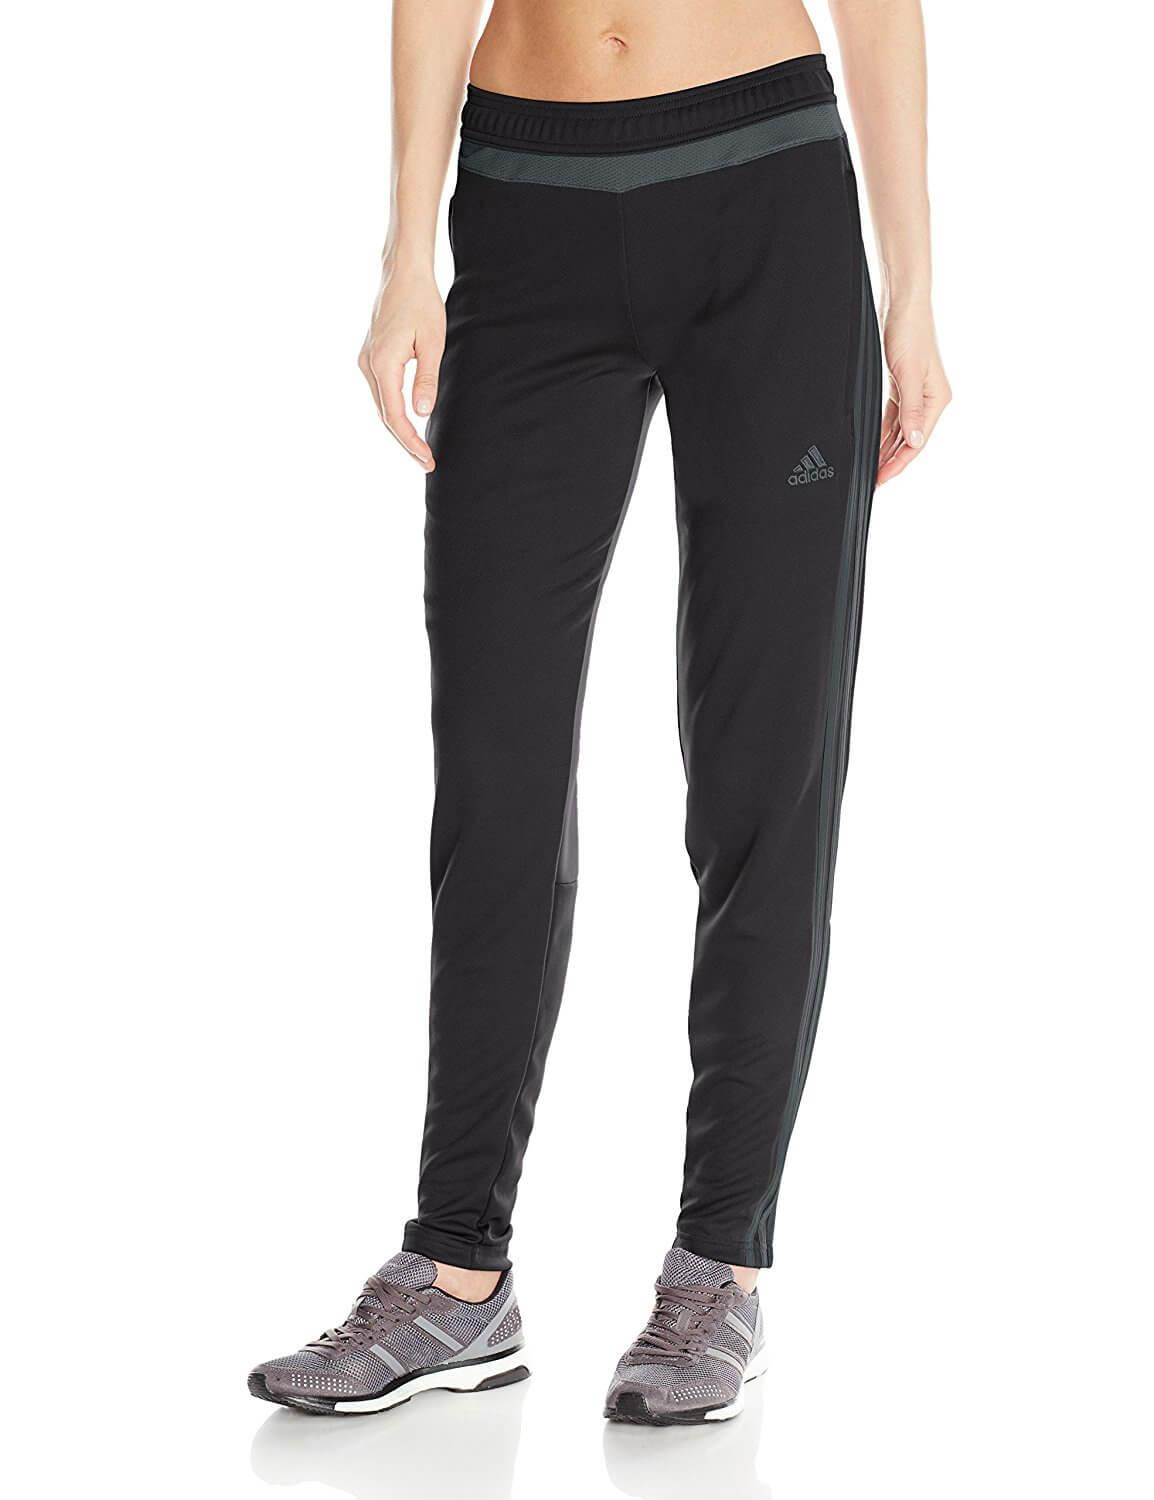 75543274a9b9 Best Adidas Tights and Leggings Reviewed